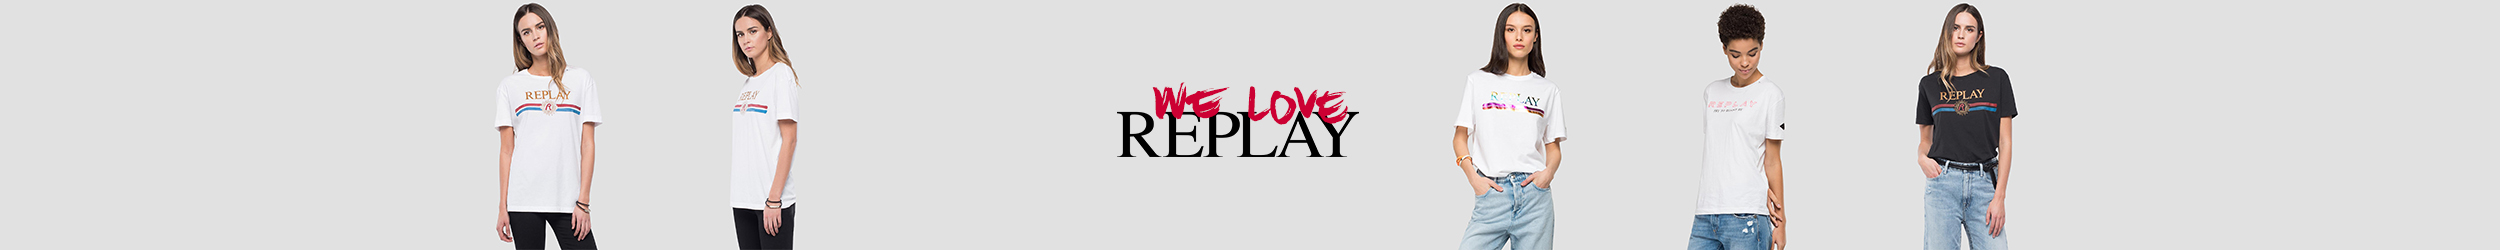 we-love-replay-banner-uzky-katgorie